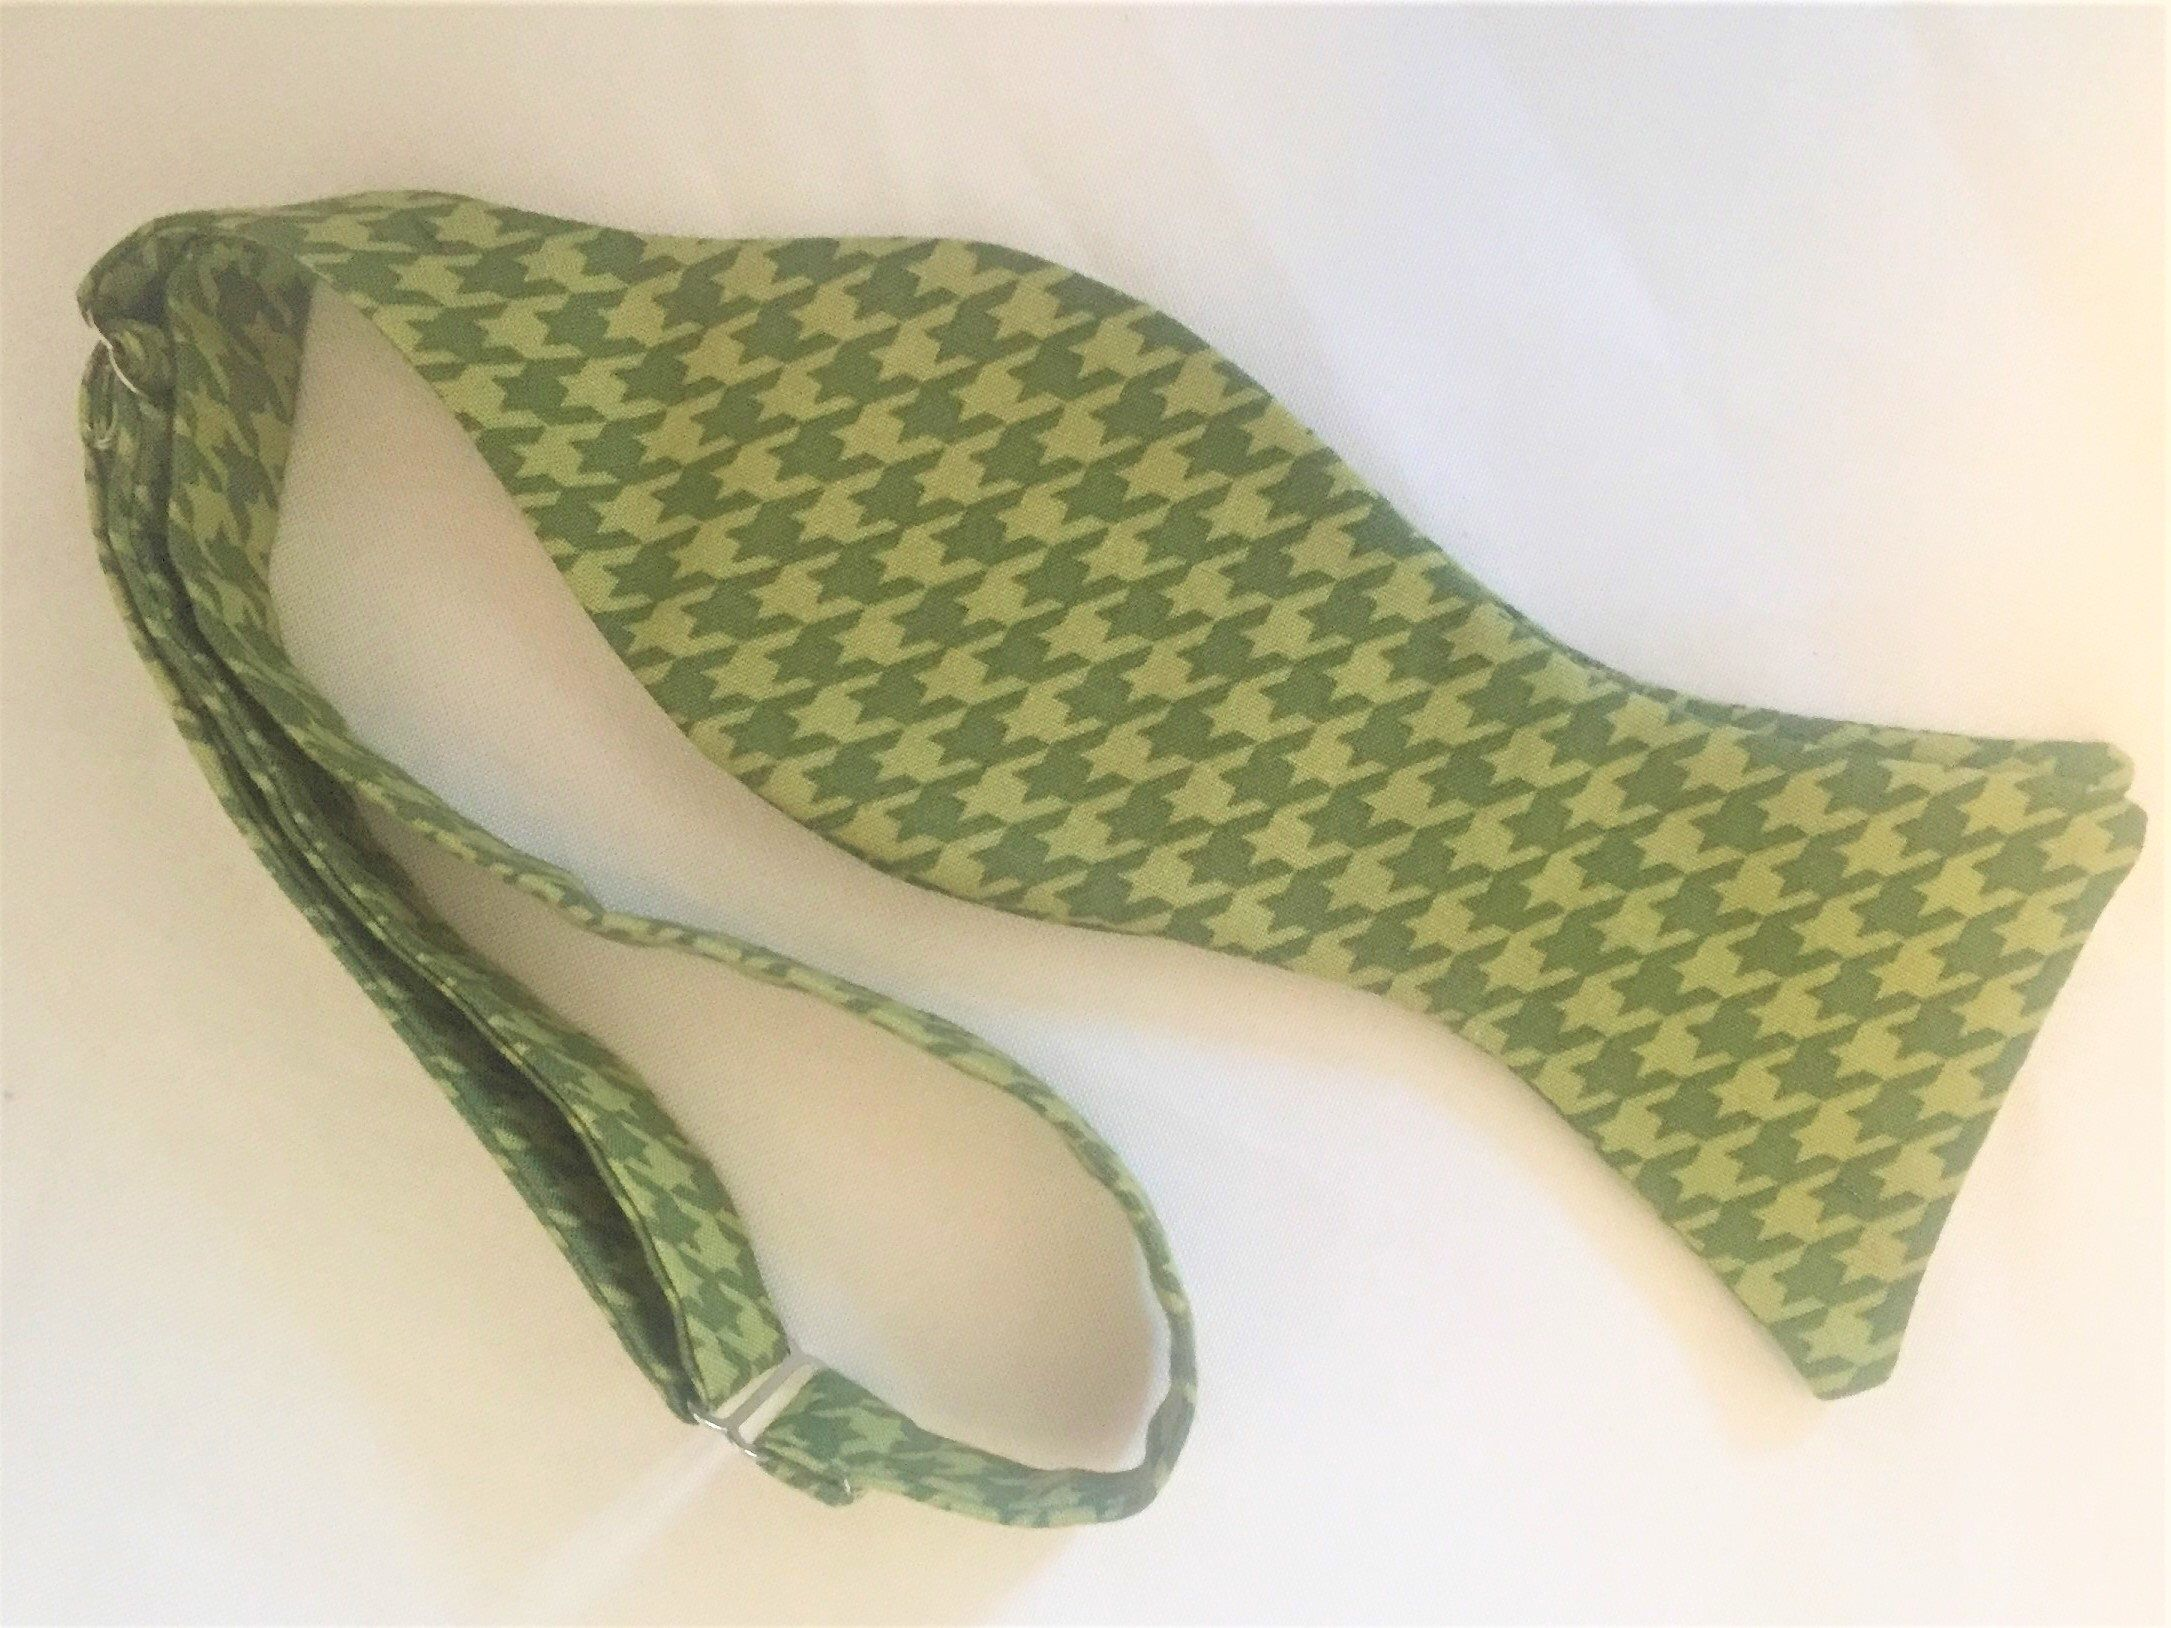 d0e8fa705909 Excited to share the latest addition to my #etsy shop: Green Herringbone  Bow Tie. Classic Shades of Sage. Available as a self tie or pre-tied.